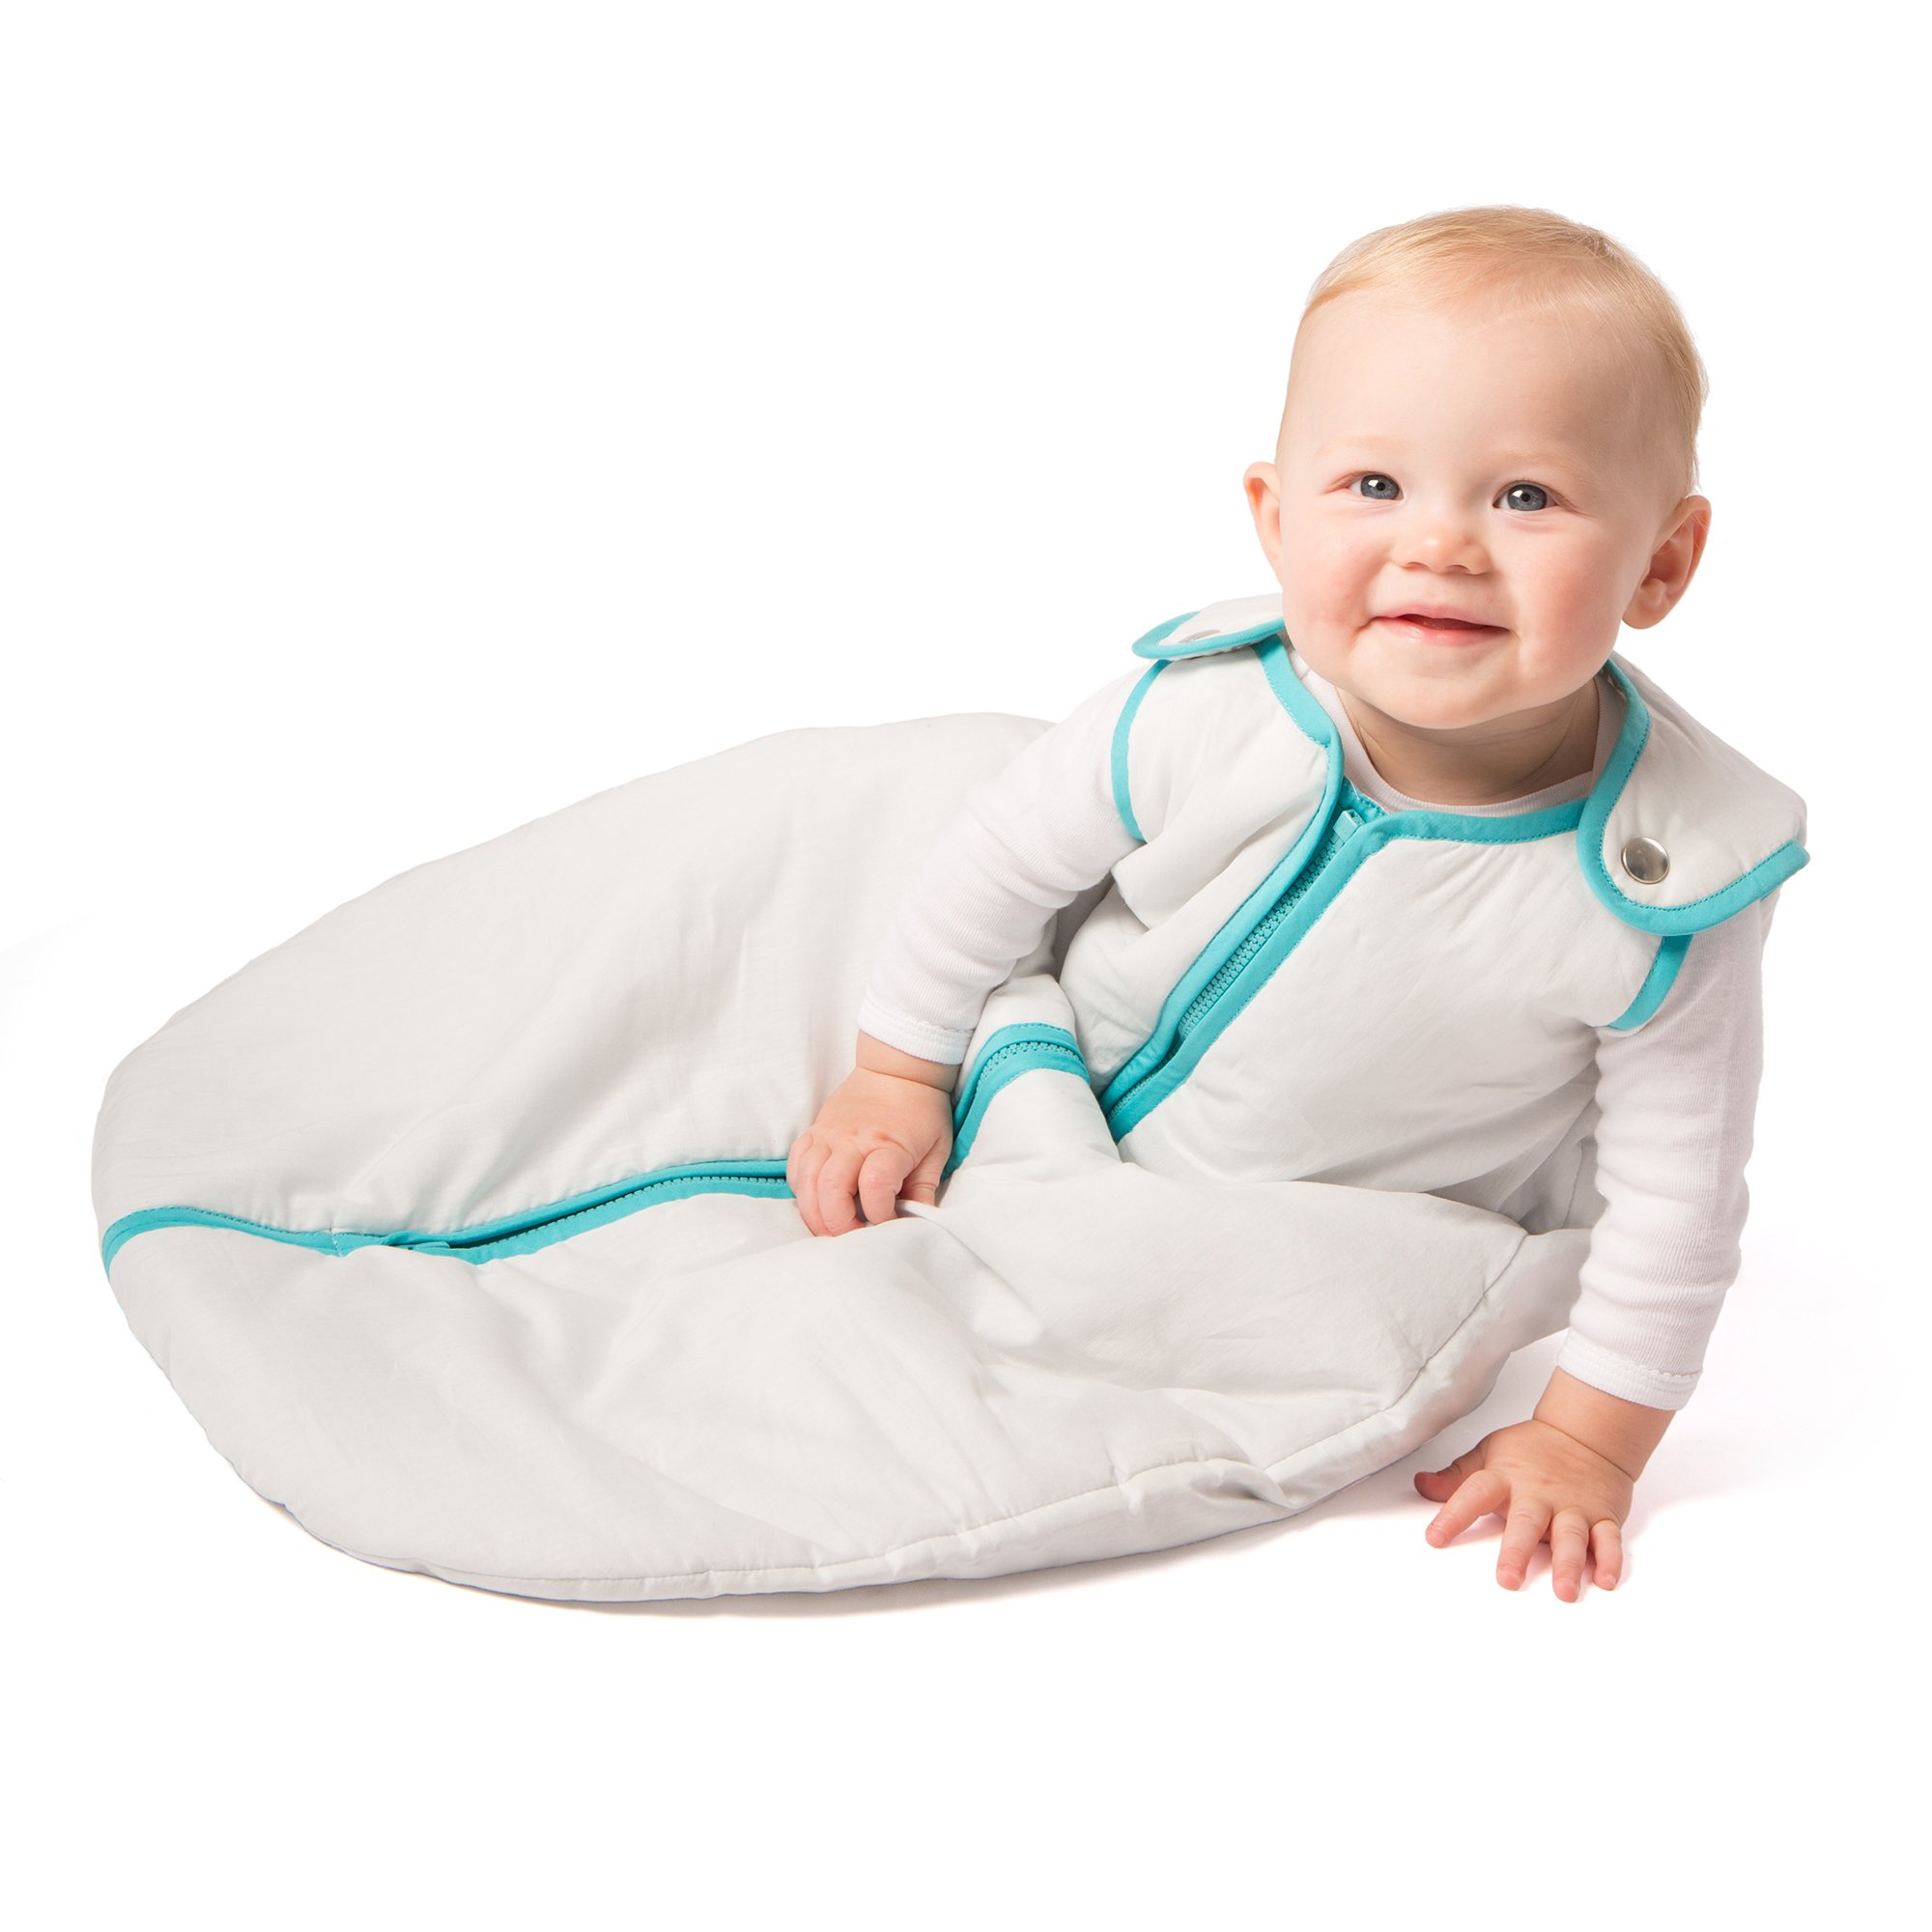 Baby Deedee Sleep Nest Baby Sleeping Bag, Dream Blue, Large